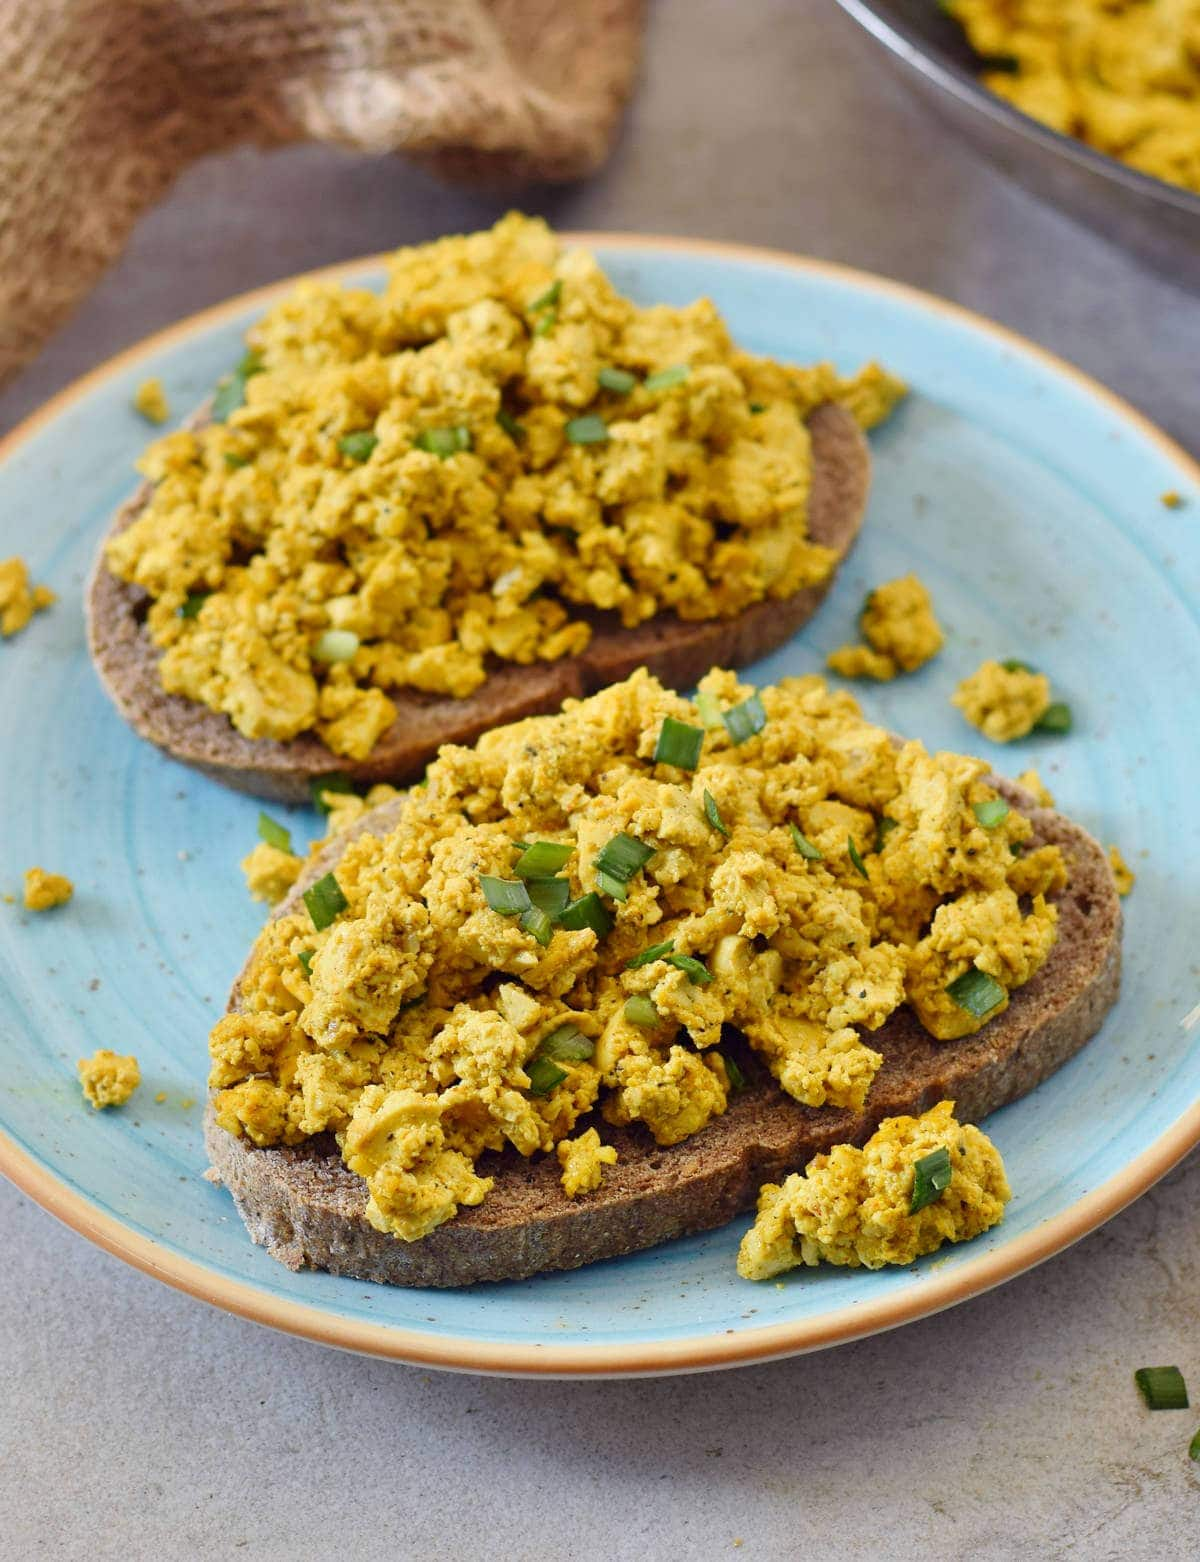 close-up of vegan eggs on bread